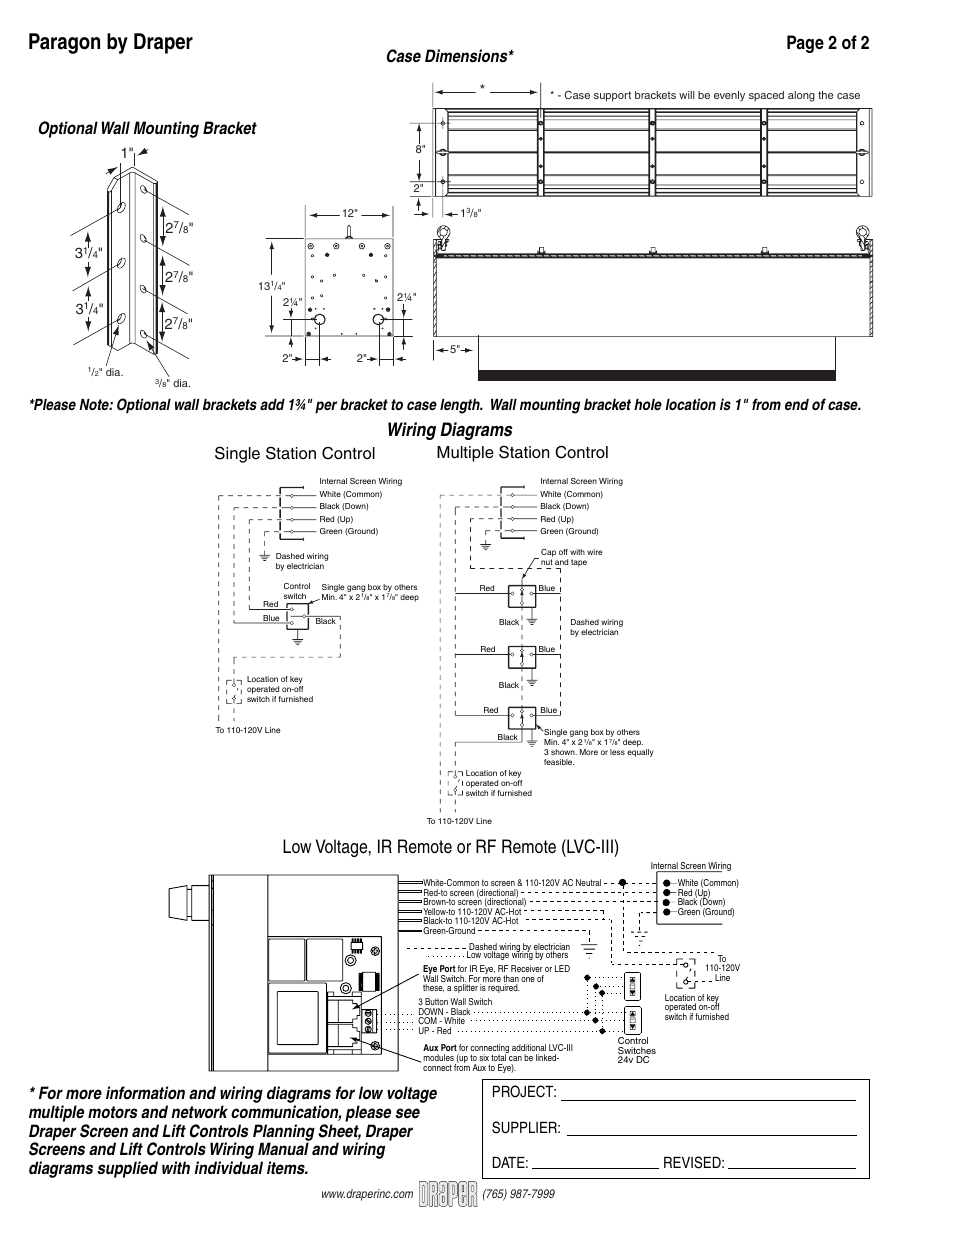 Projector Screen Wiring Diagram Solutions Paragon By Dr Page 2 Of Diagrams